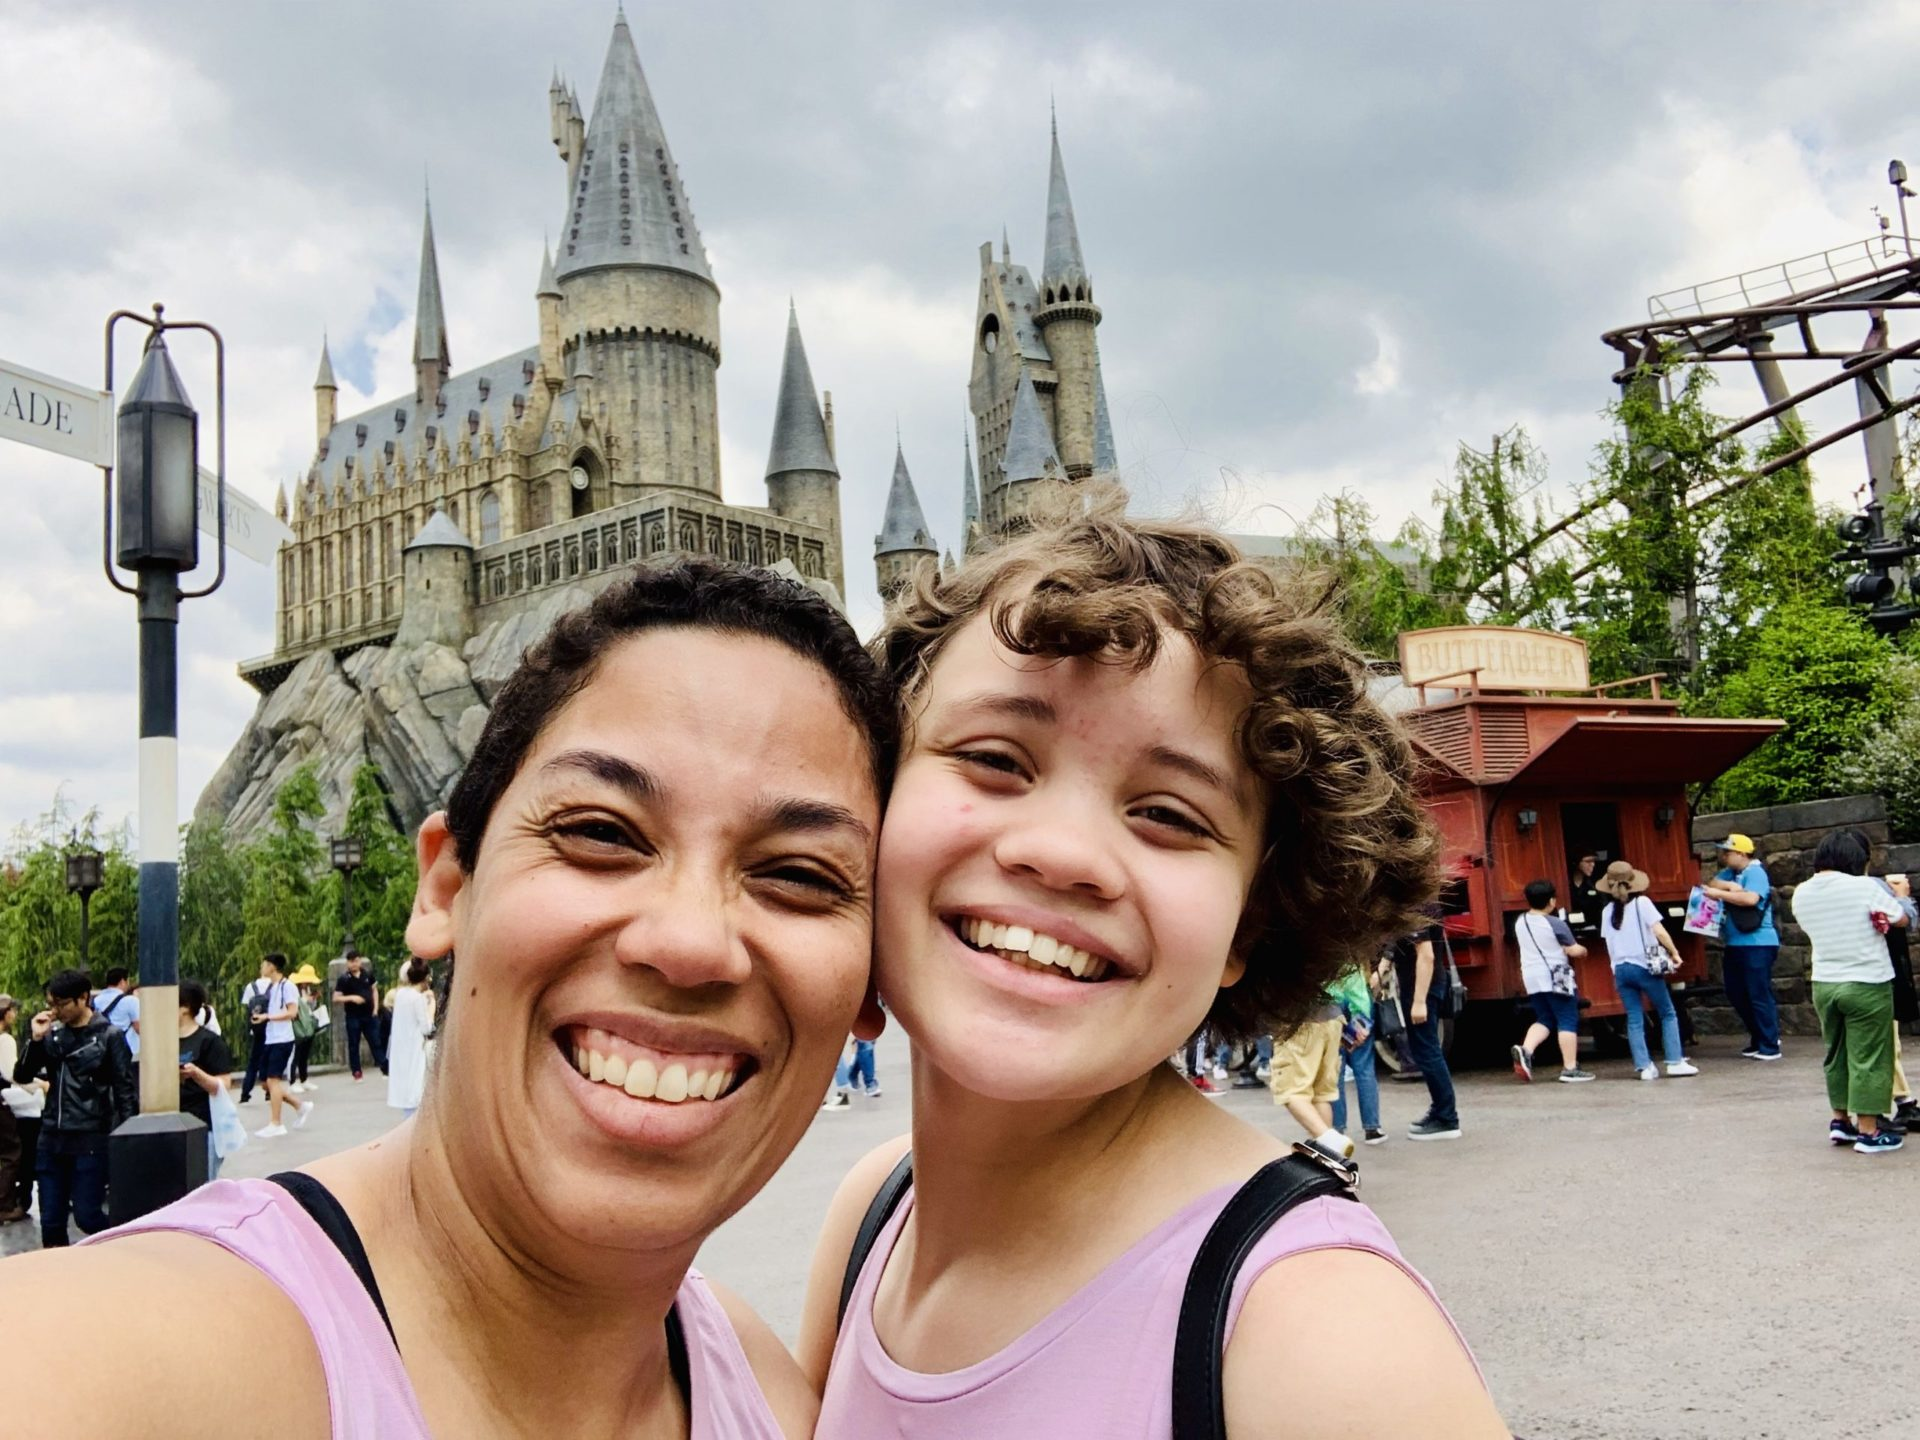 Two women standing outside Hogwarts castle at Universal Japan